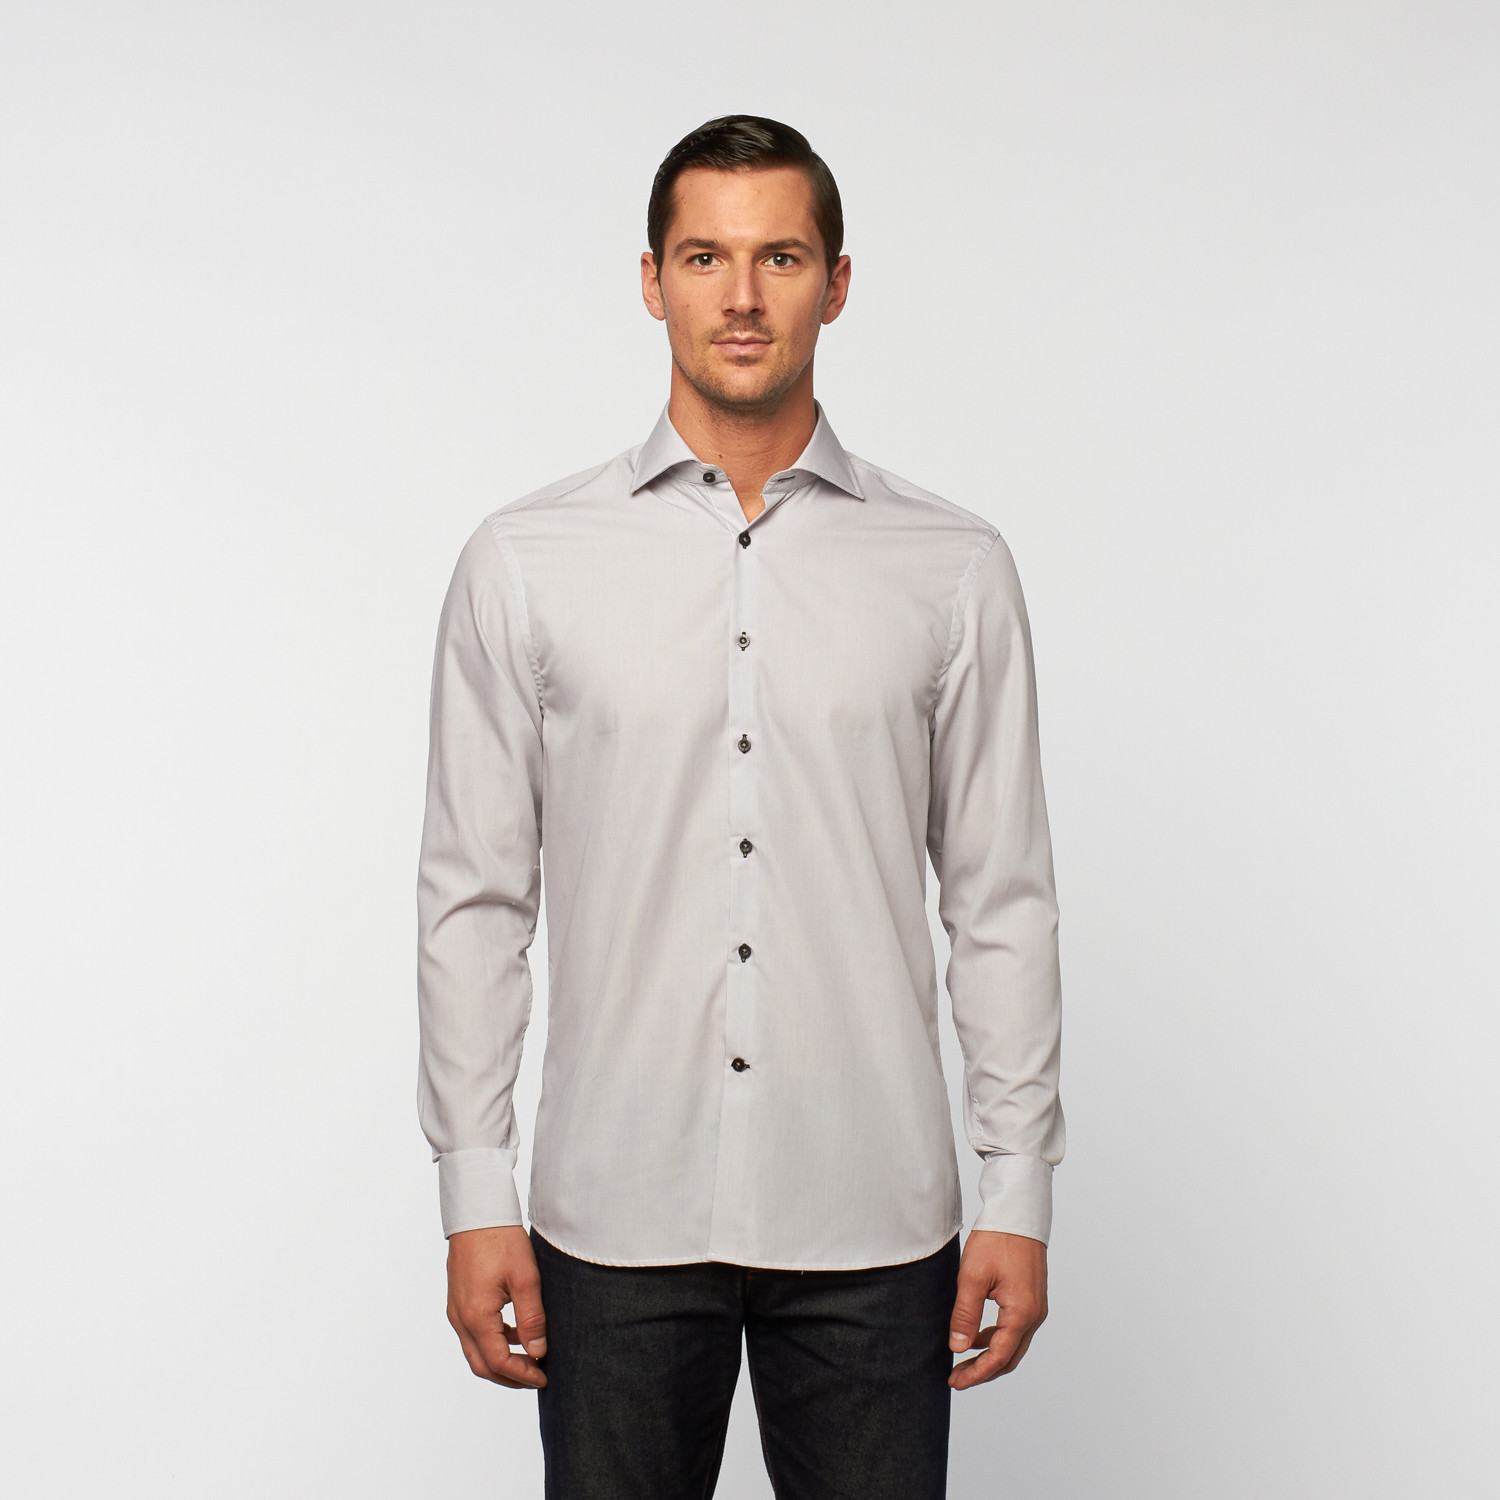 unanyme button up dress shirt light grey s georges